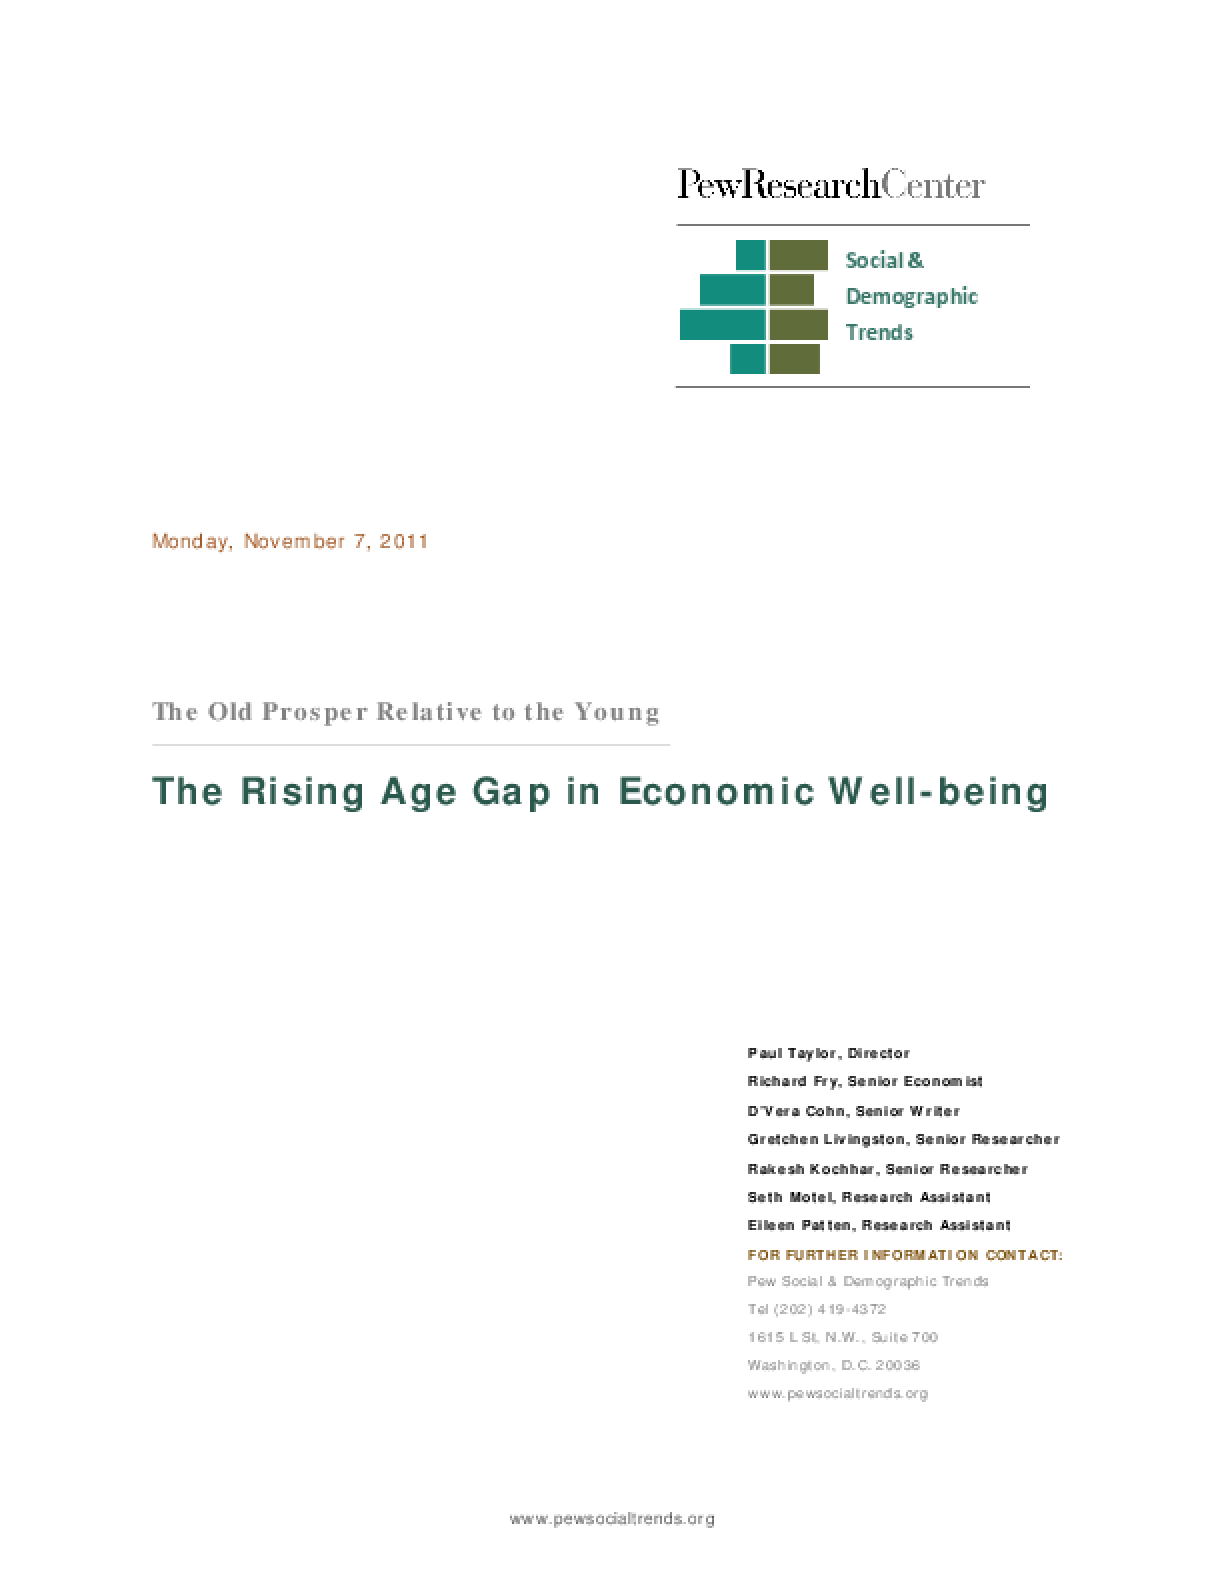 The Rising Age Gap in Economic Well-Being